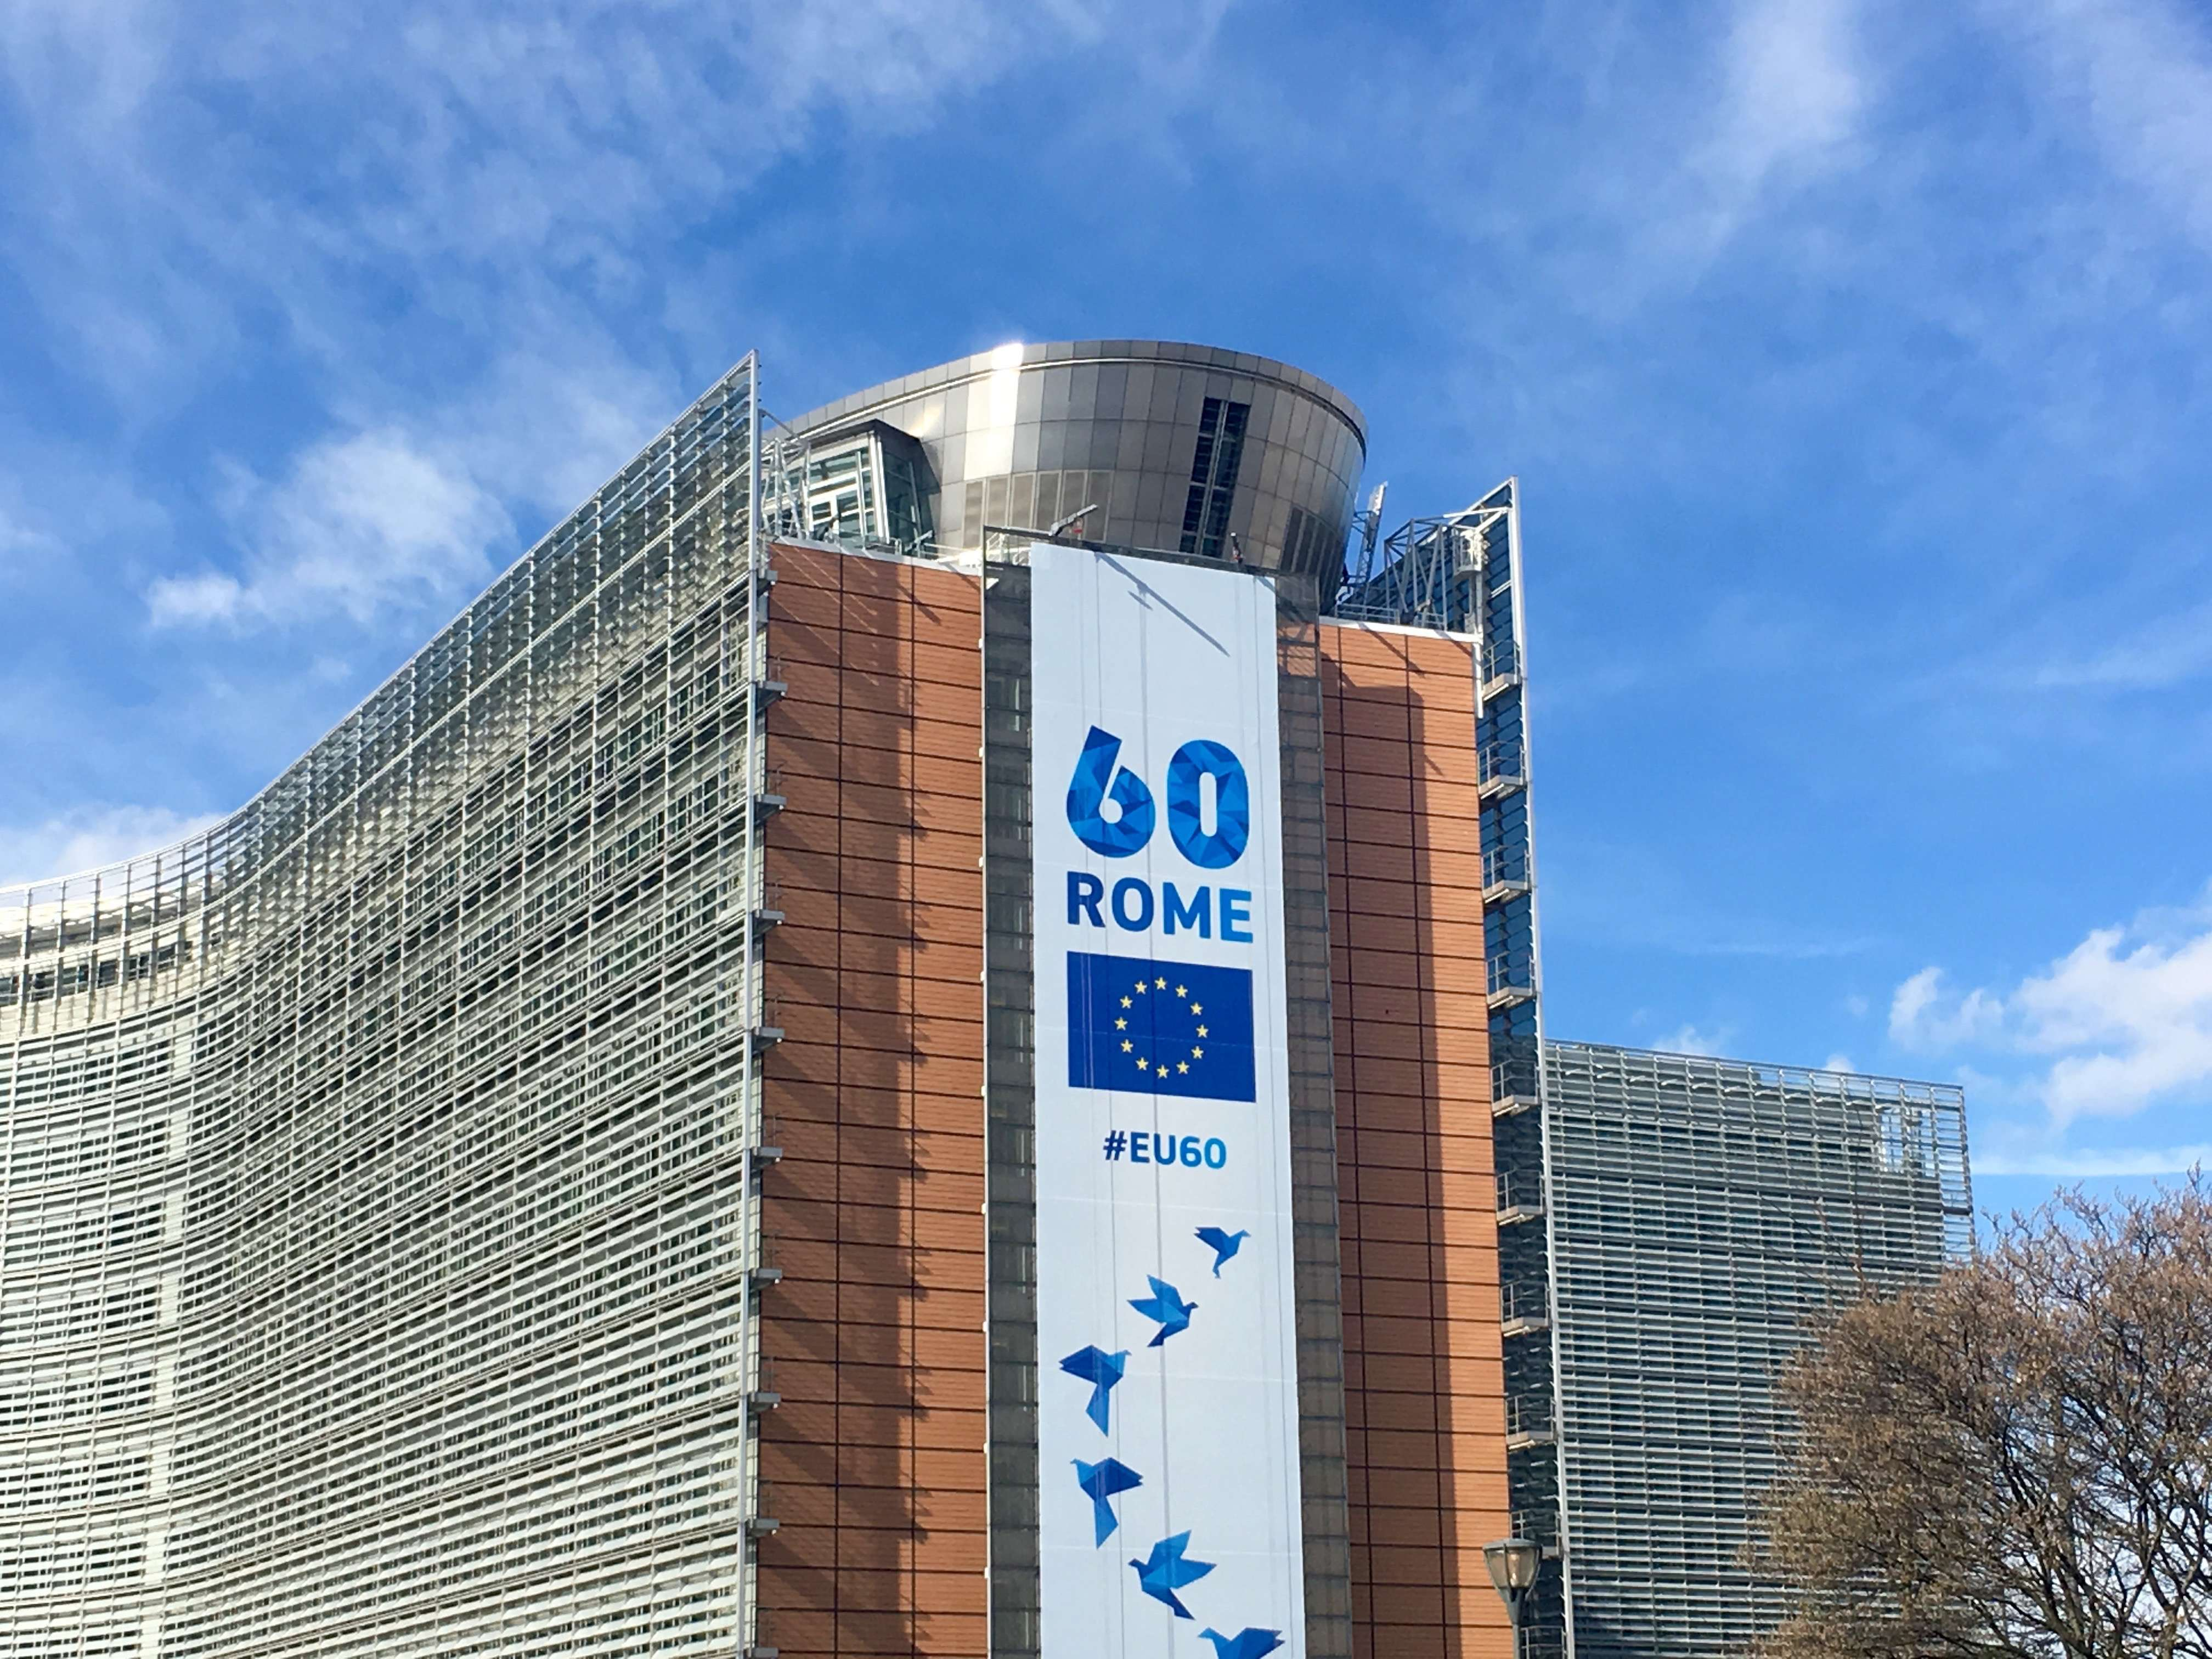 #FactOfTheDay : The EU is turning 60!